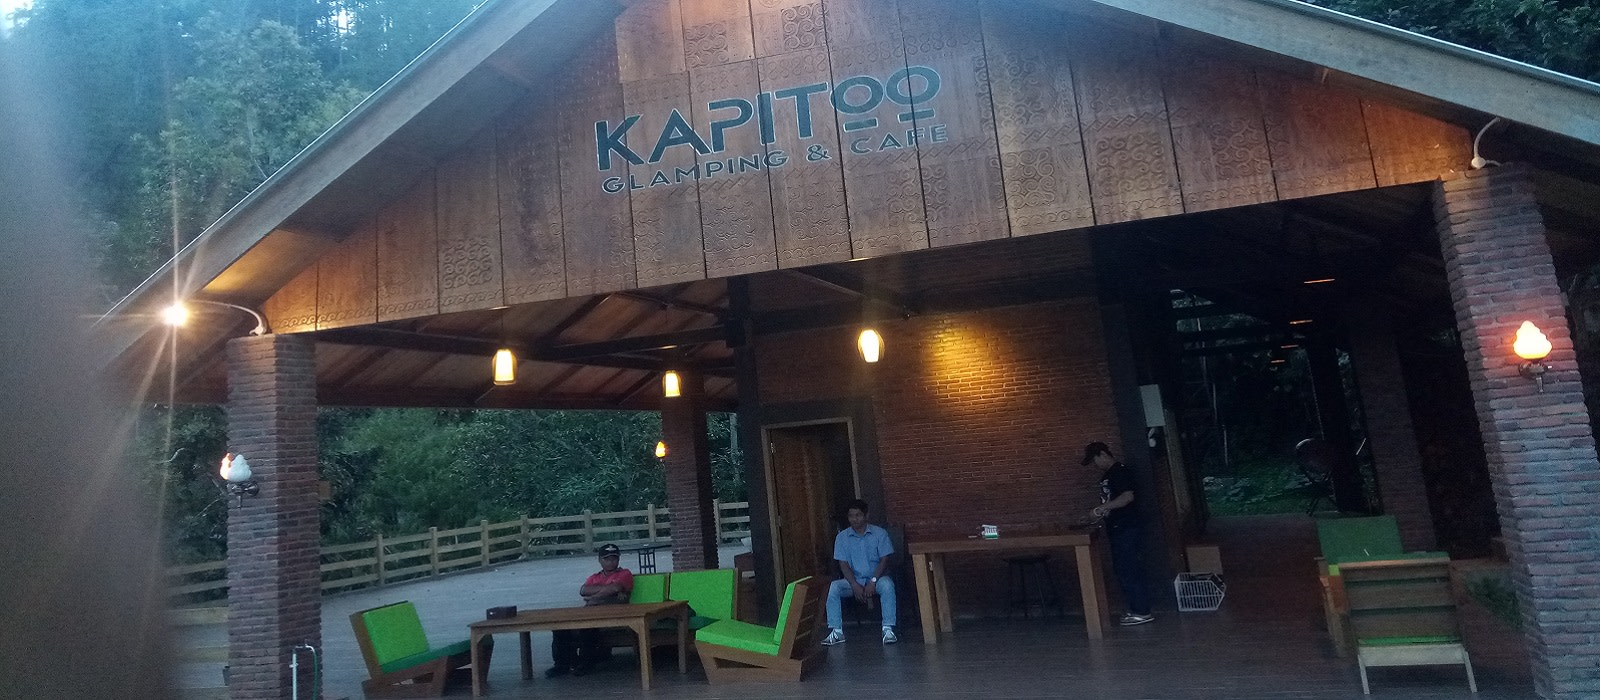 Hotel Glamping Kapitoo and Cafe Indonesien